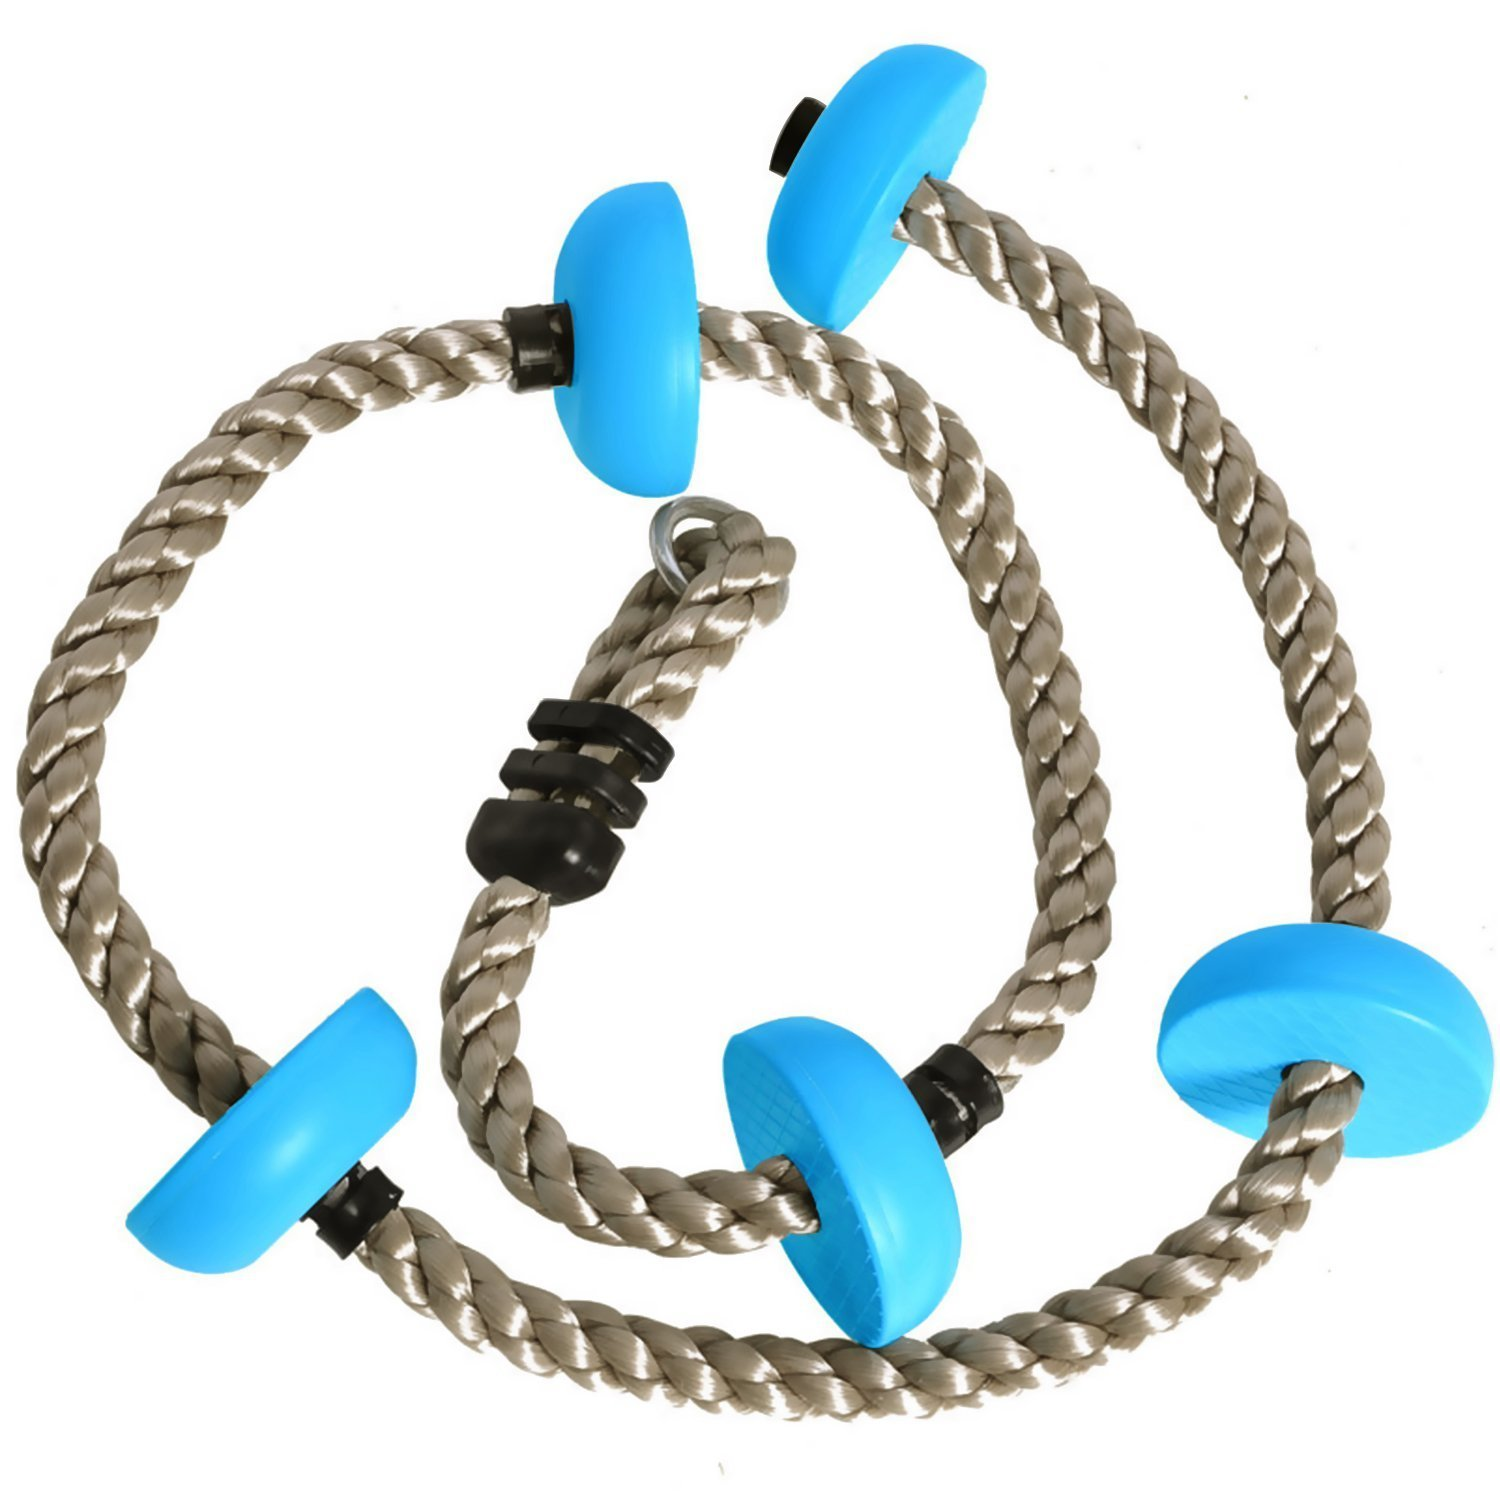 Climbing Rope, Wuudi 6.5 ft Five Knotted Climb Rope with Platforms Foot Holds ( Rubber Base)for kids-Great as Backyard ,Tree House ,Playground and Swing Set Accessories